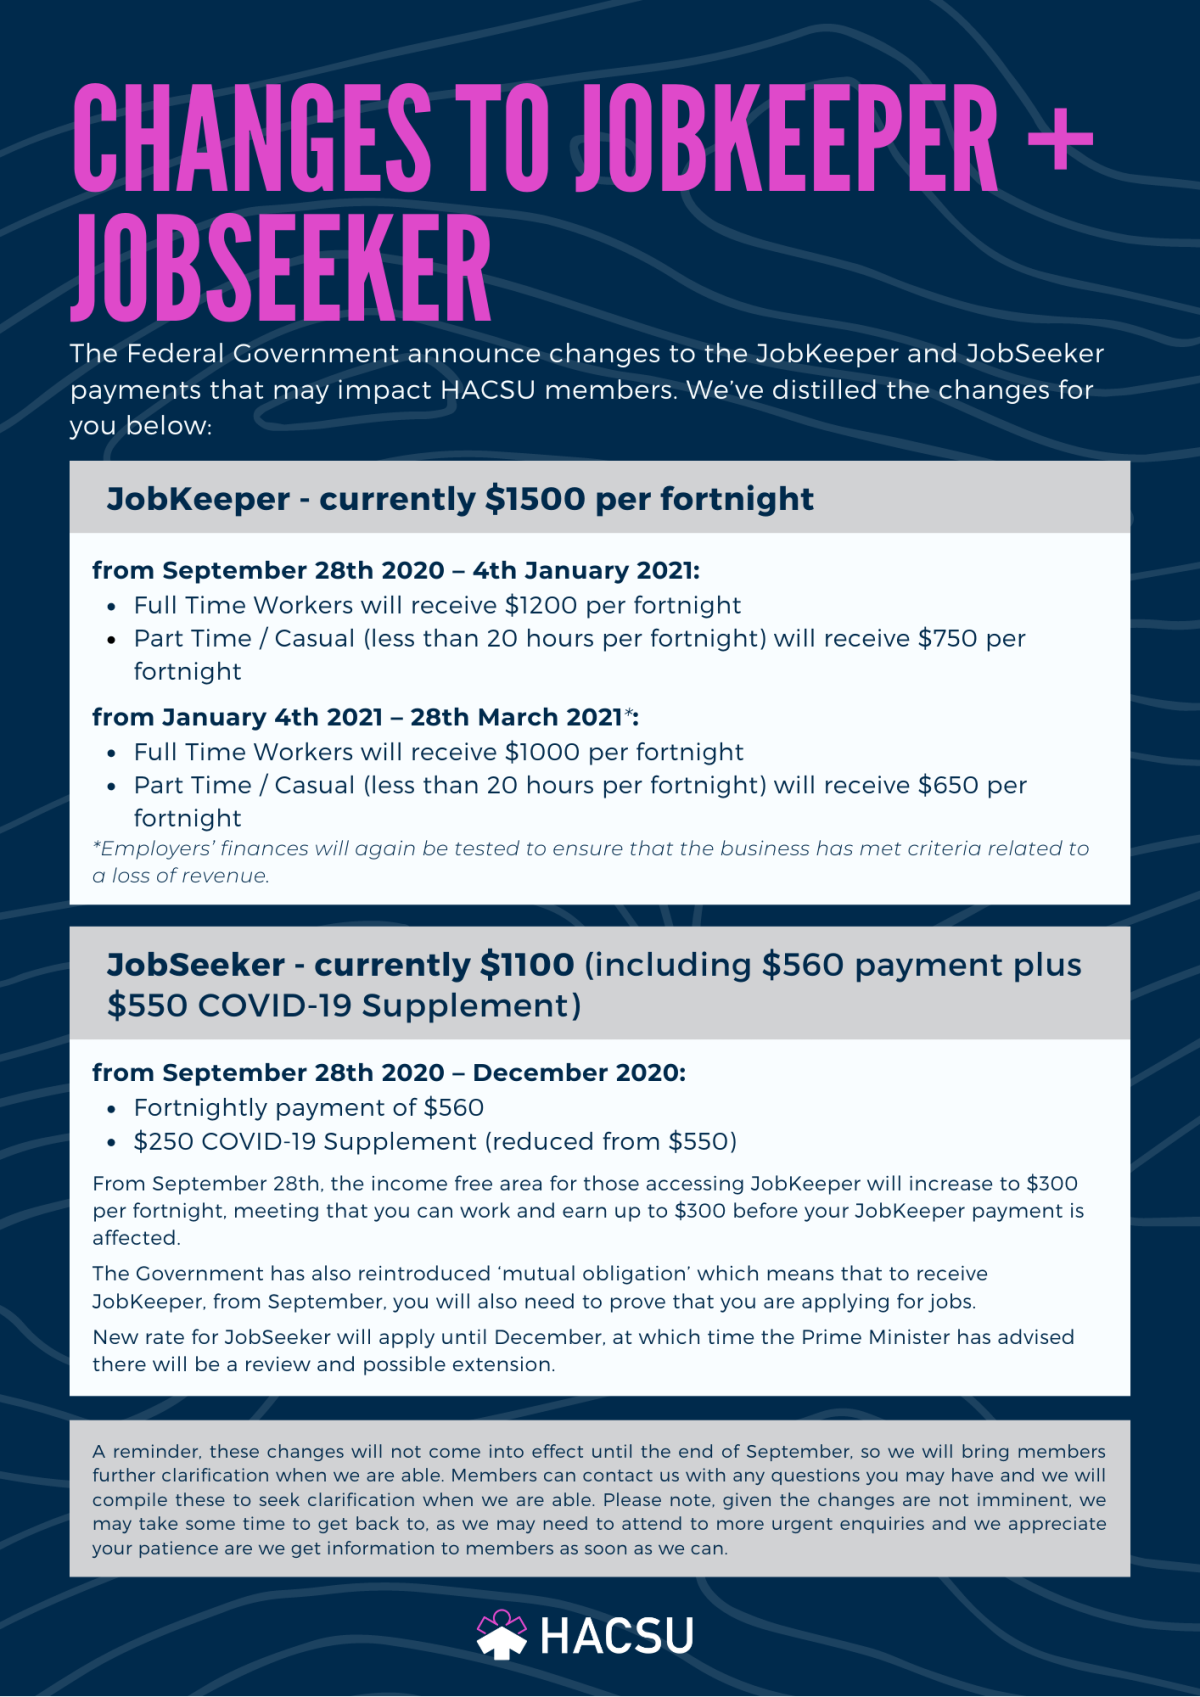 Changes to JobKeeper + JobSeeker Payments